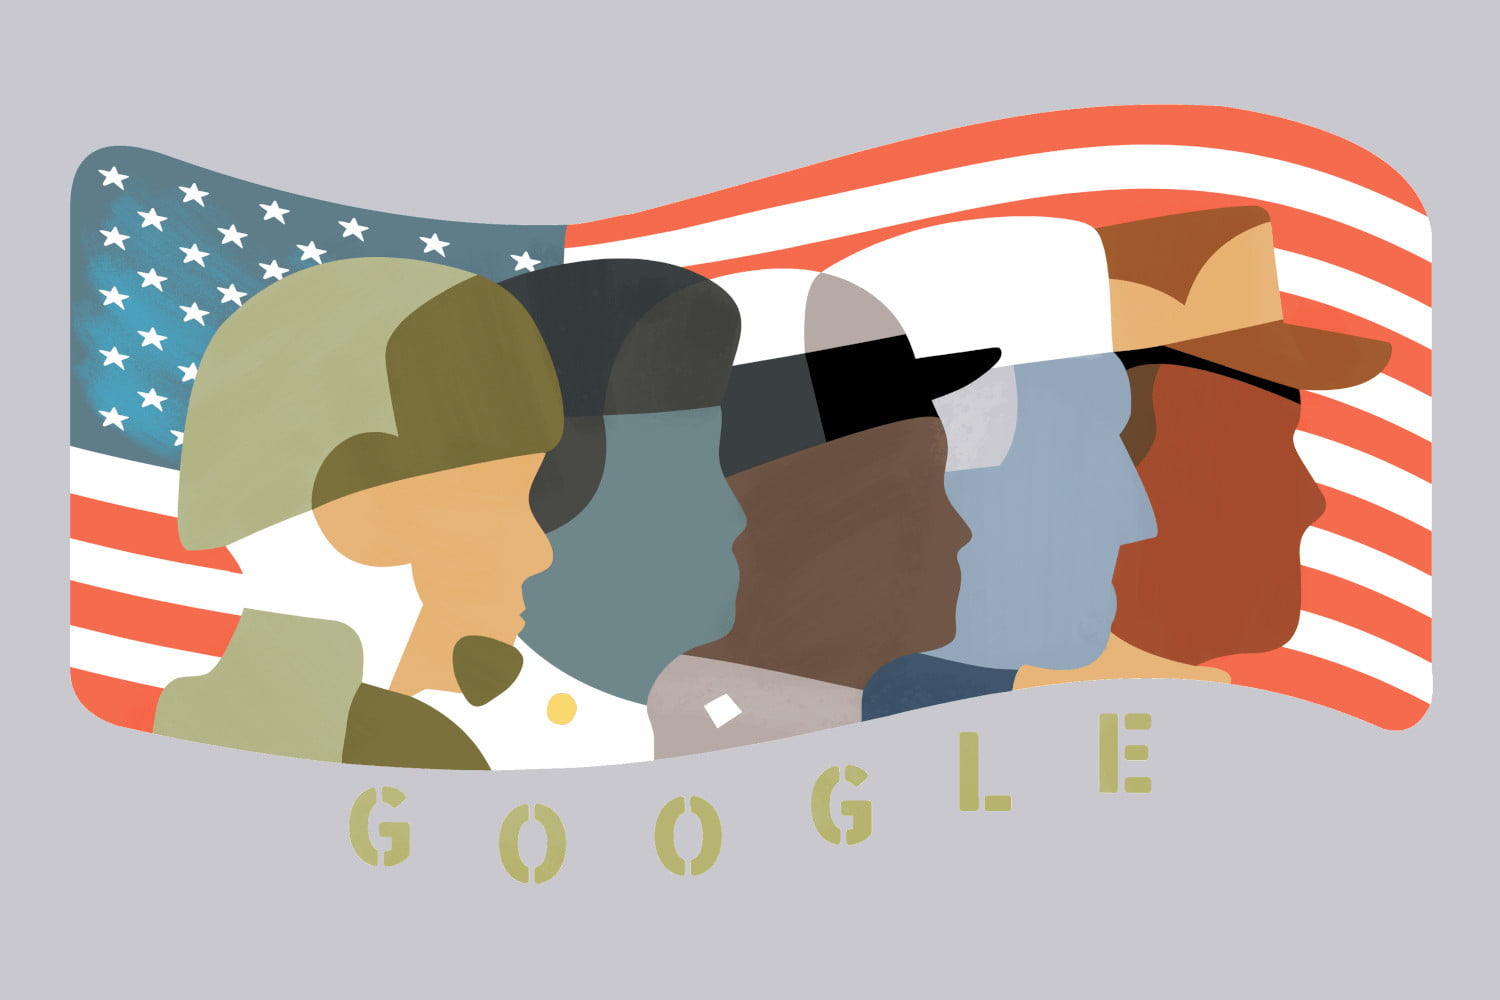 google honors veterans day with doodle highlighting veterans